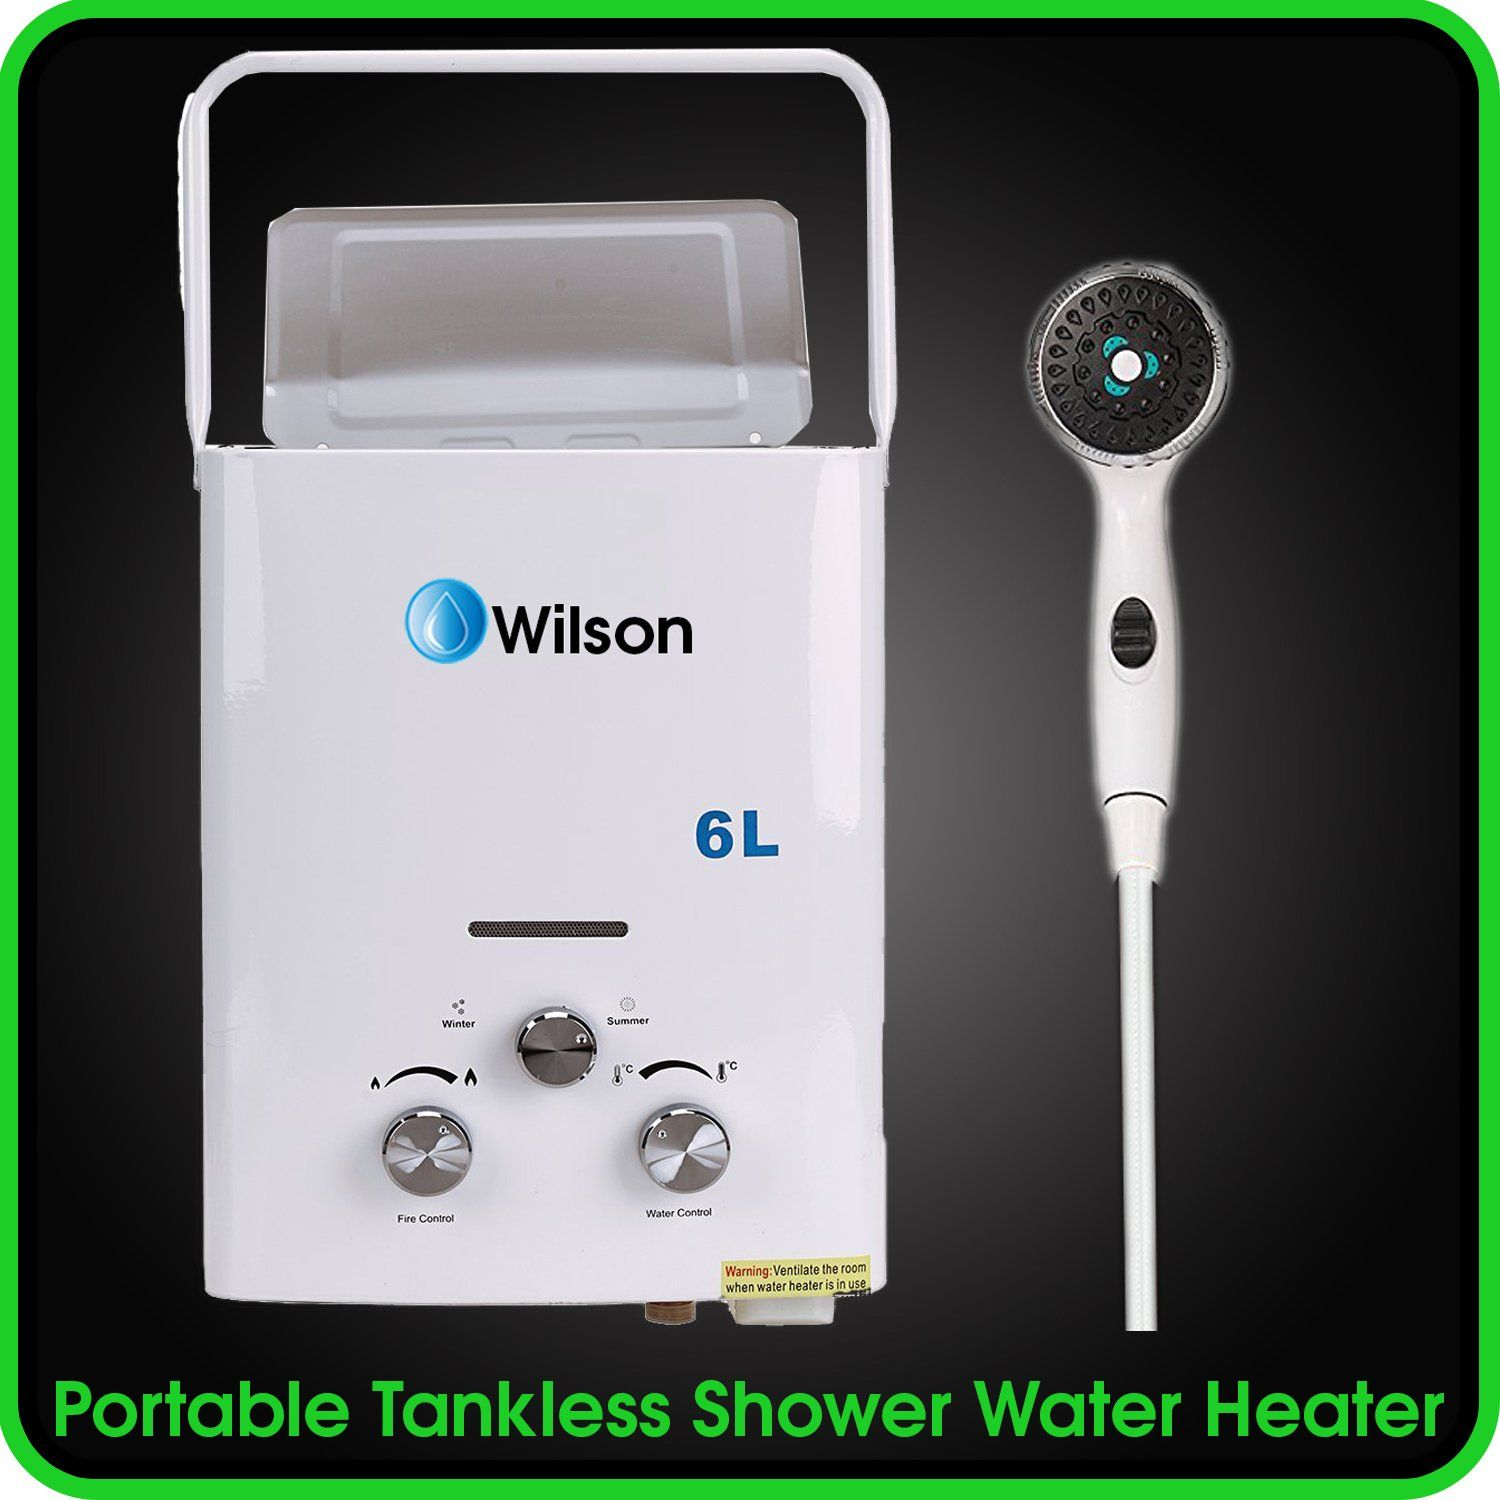 Tankless Water Heater Portable Instant Hot Shower   6L / 1.5 GMP   Best For  Outdoor, Camping, Sailboat, Cabin And Off The Grid Living   Easy To Use And  ...